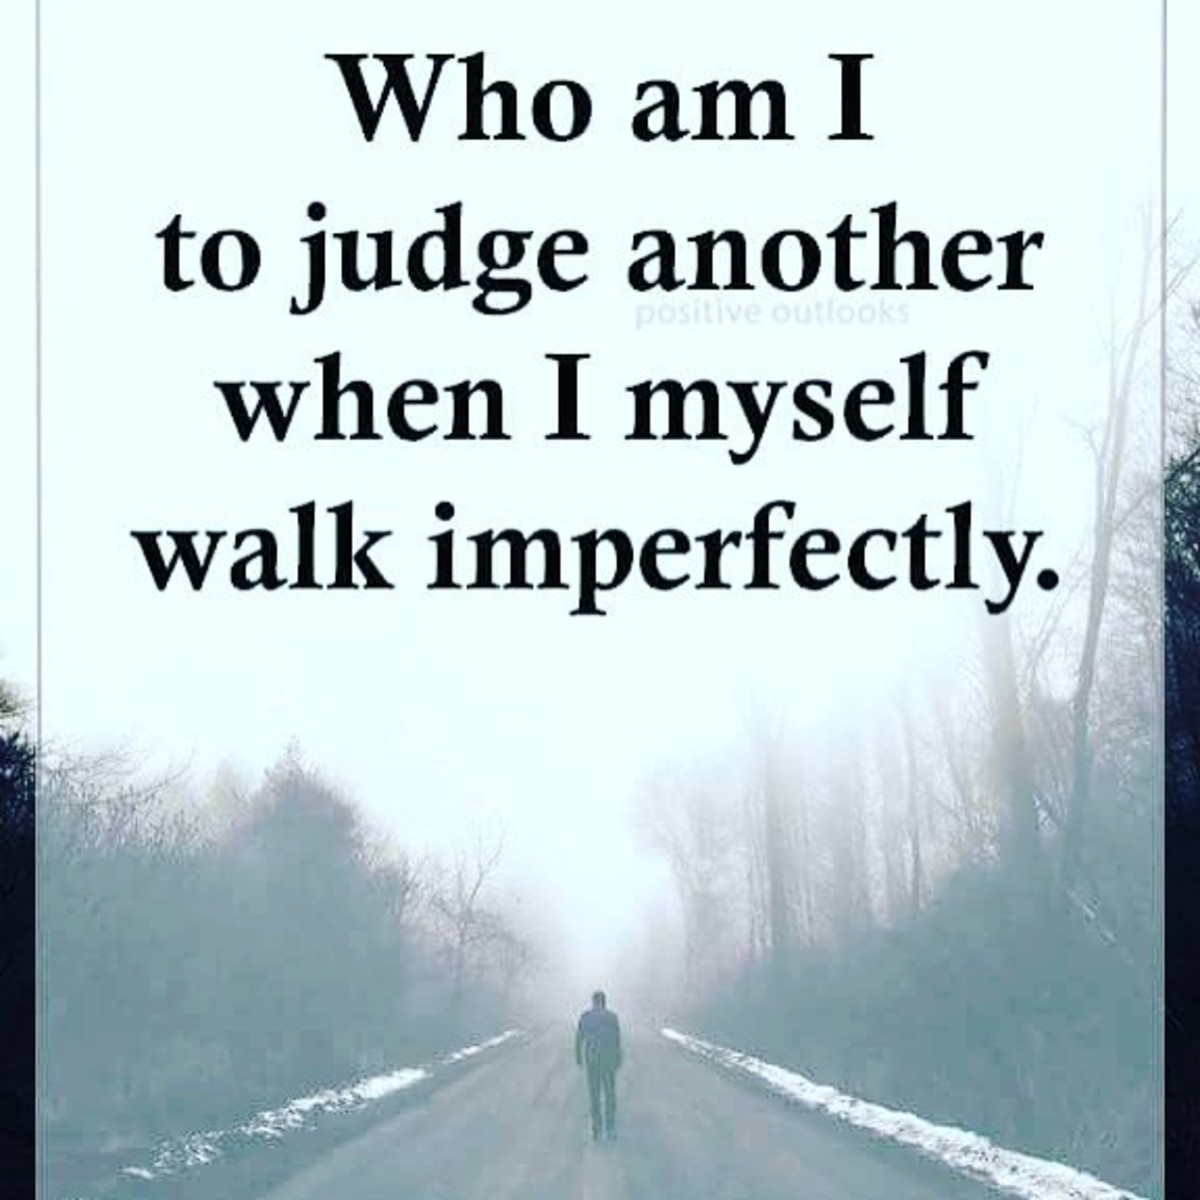 httphubpagescomhubwho-am-i-to-judge-another-when-i-walk-imperfectly